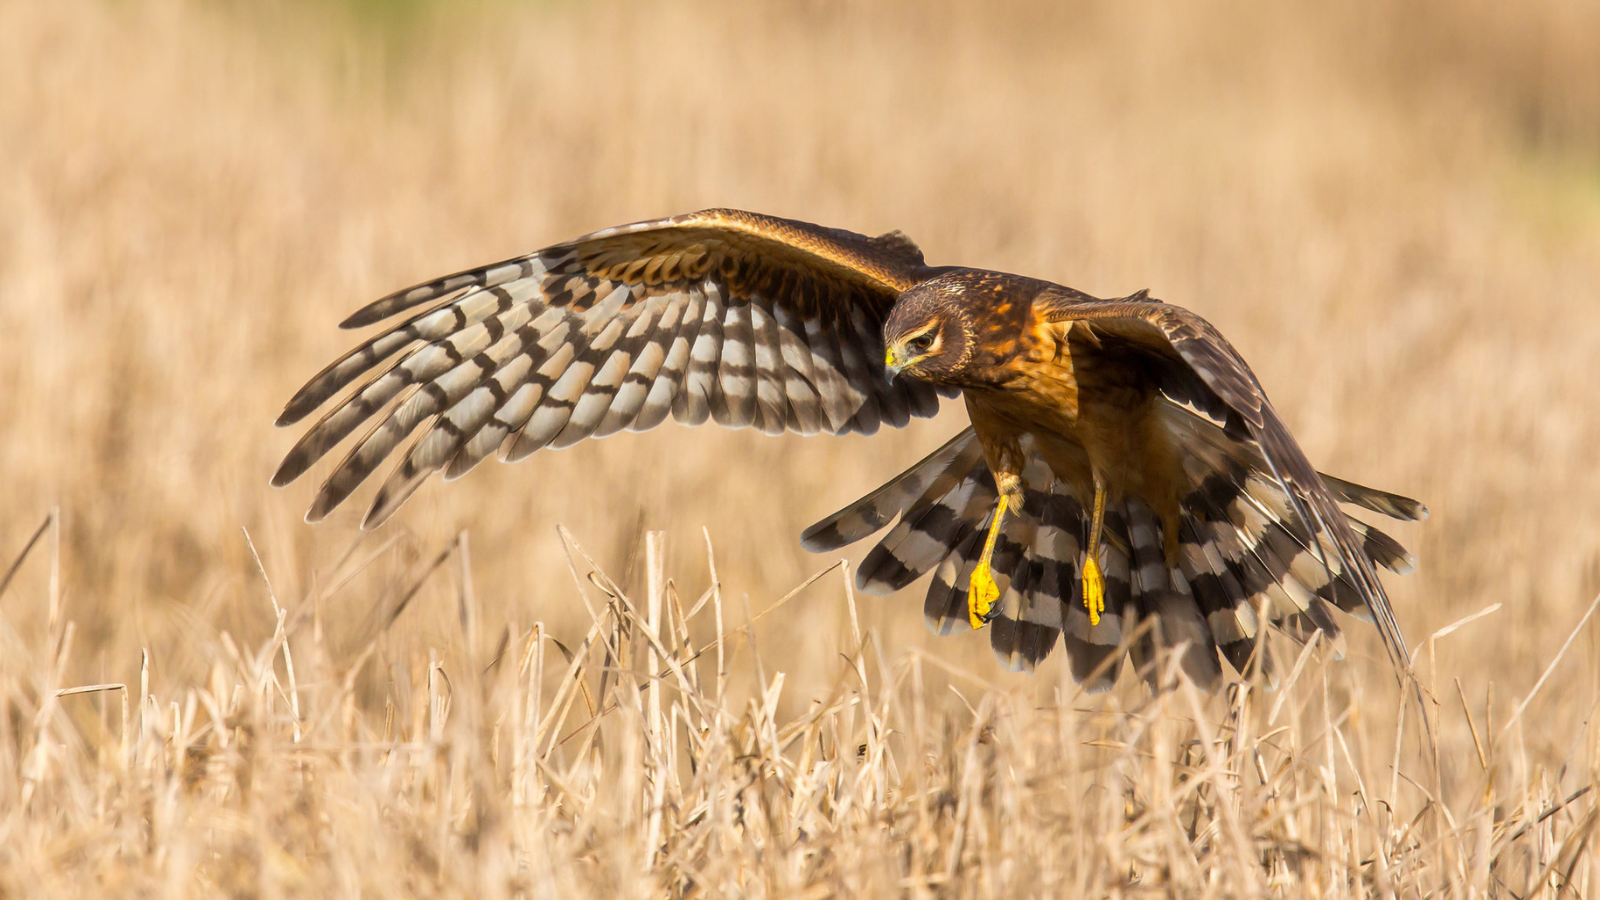 Northern Harrier by Mick Thompson